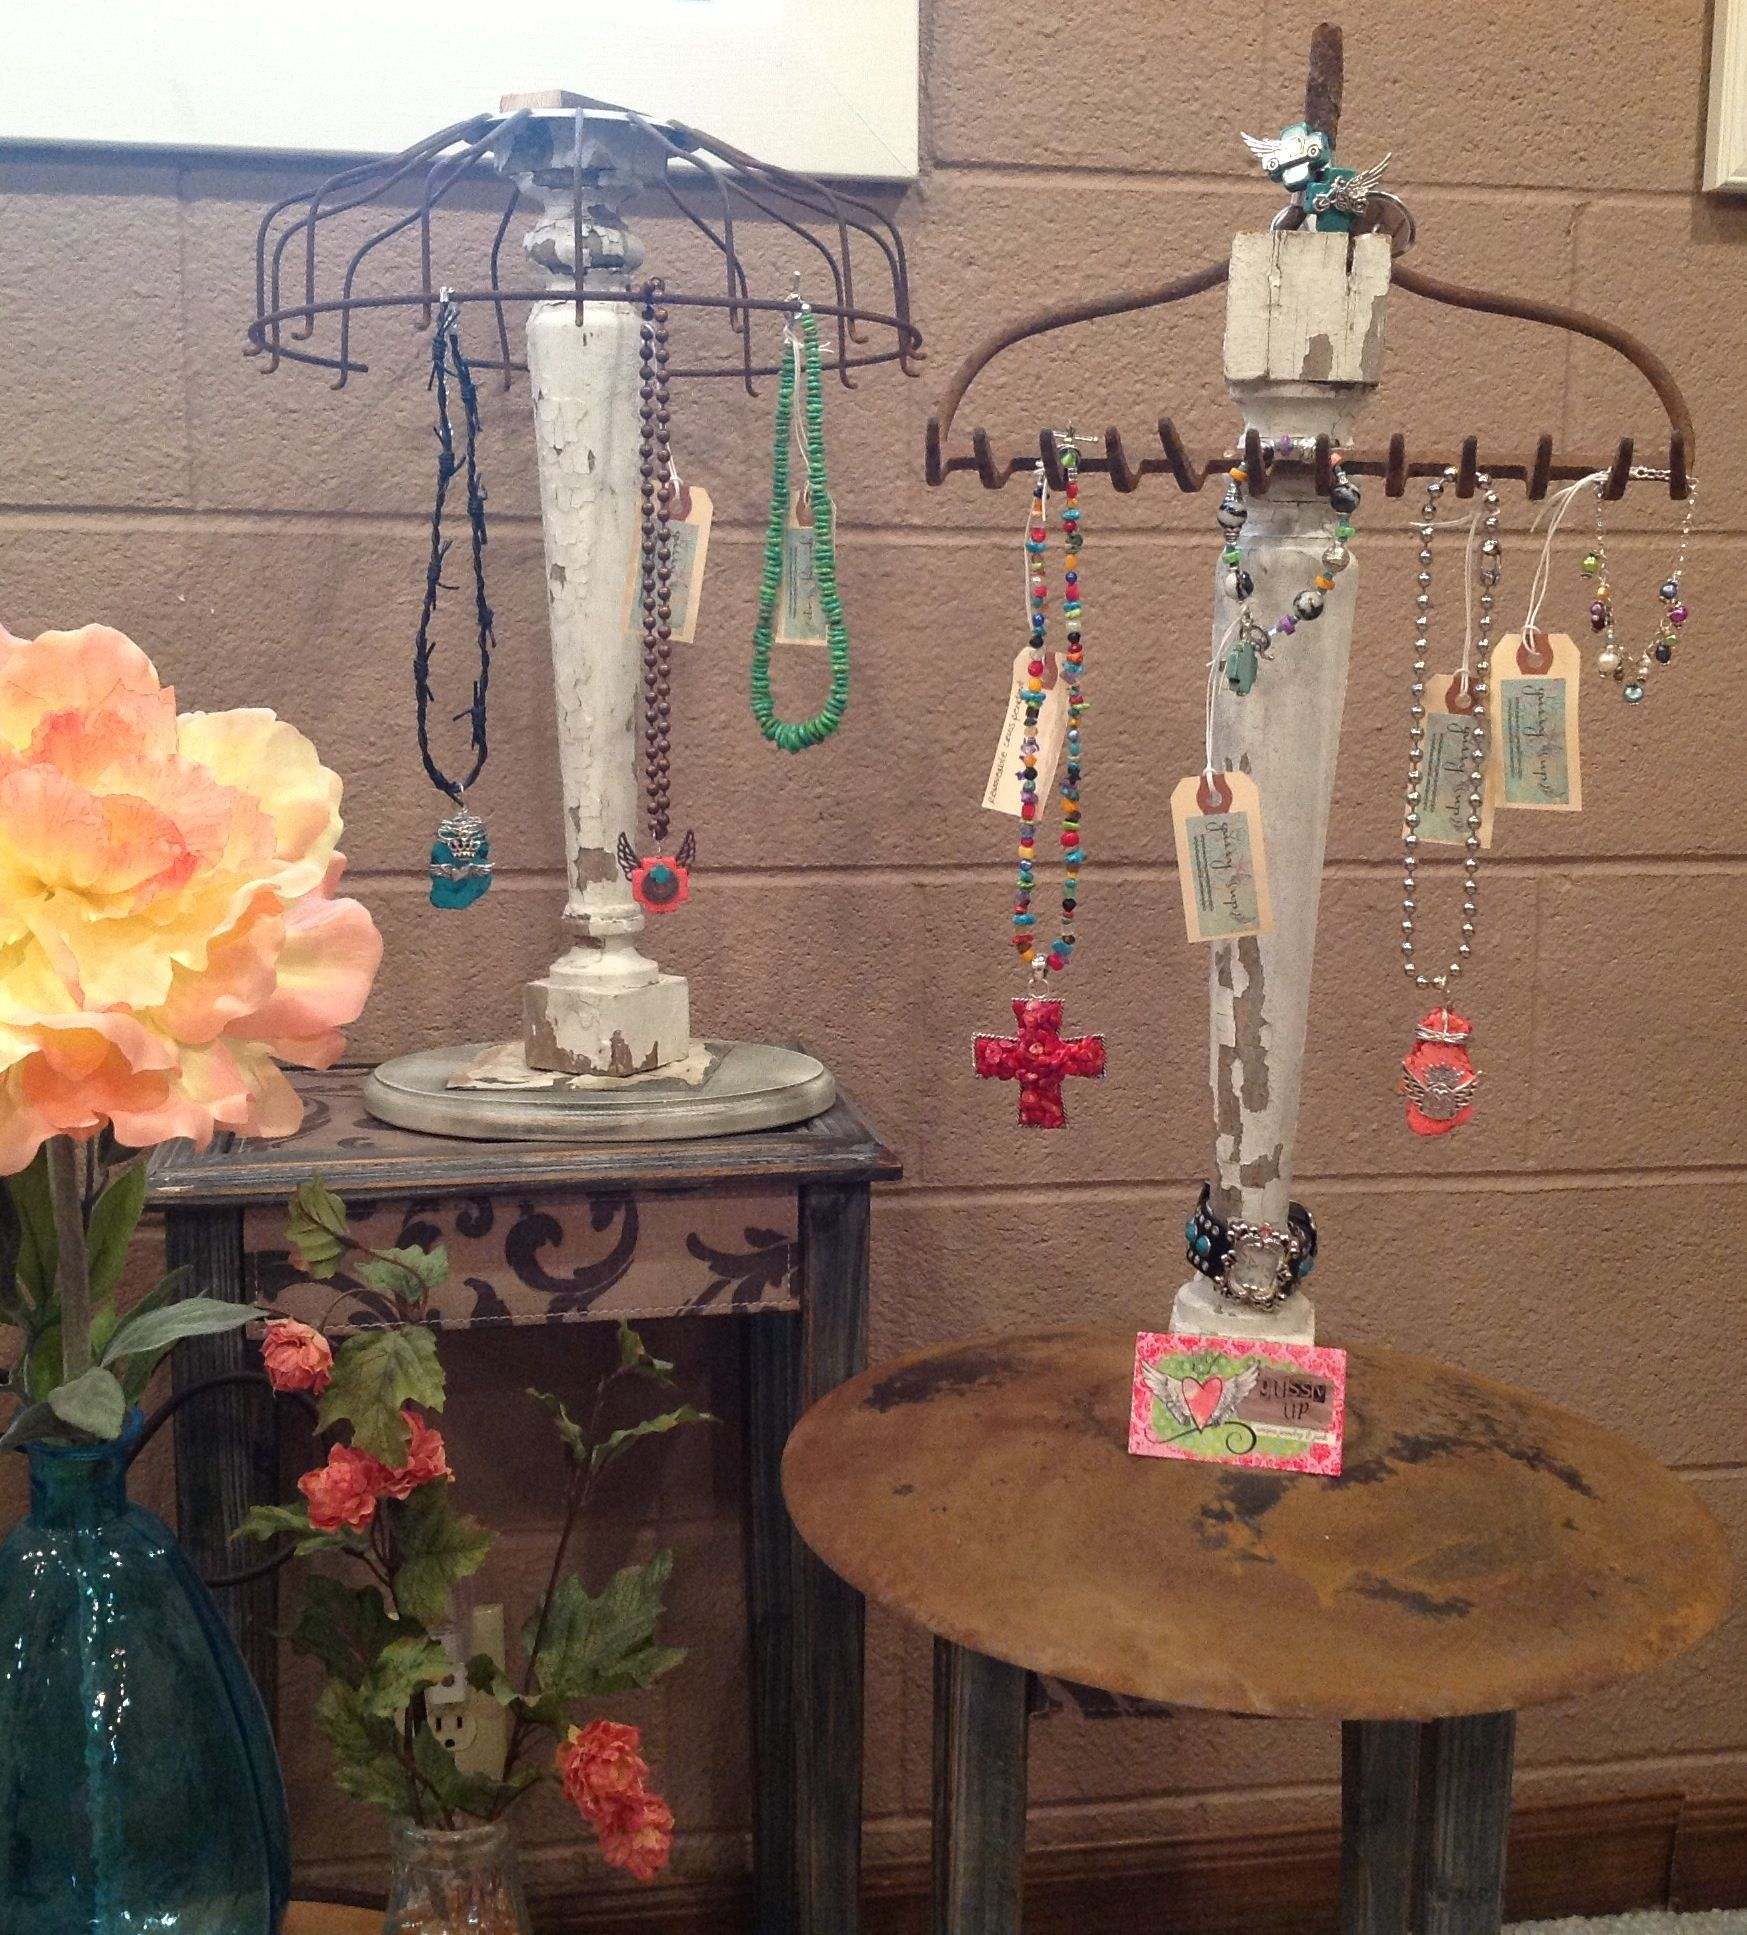 Jewelry displays - think I'll just make displays and sell ...